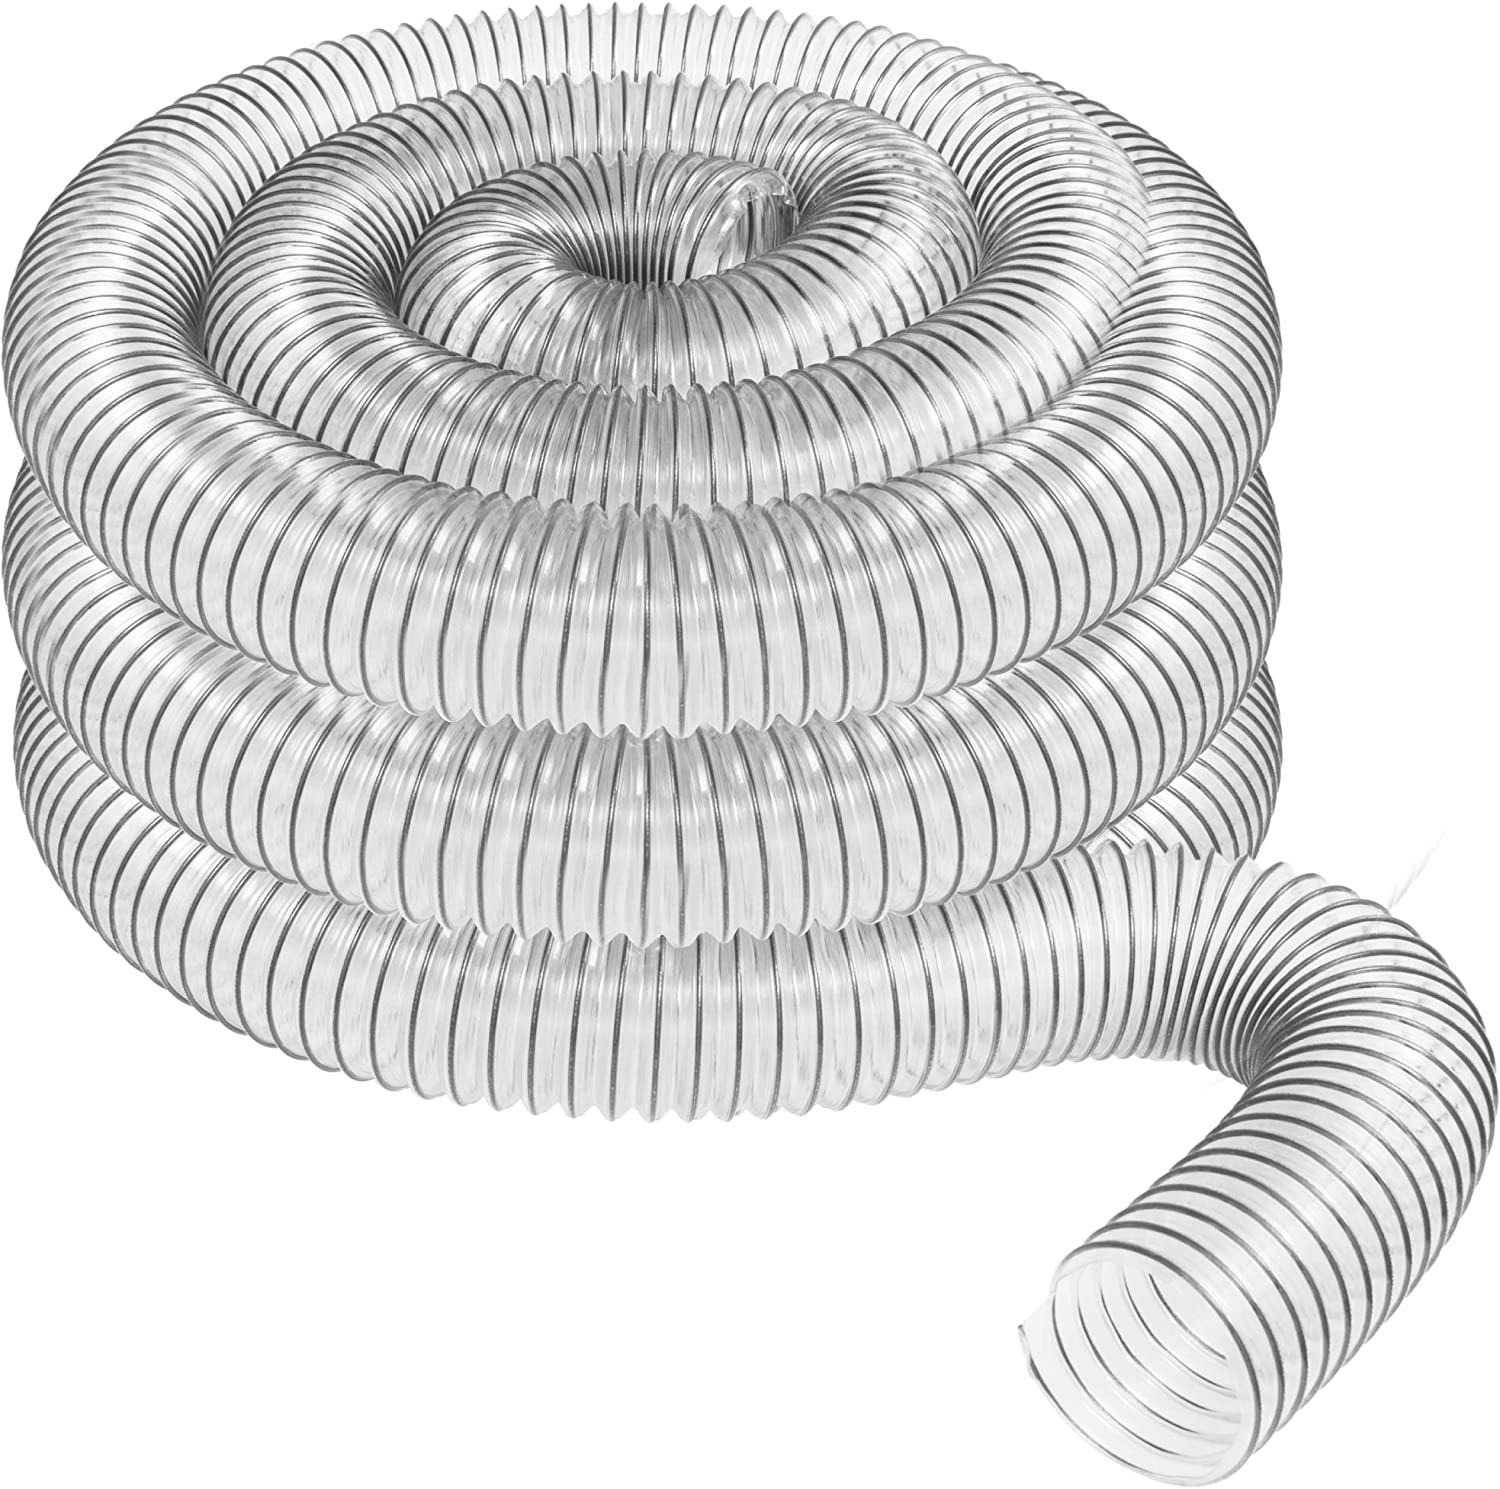 Top 10 Best Dust Collector Hose Reviews In 2021: No 1 Is Awesome 1